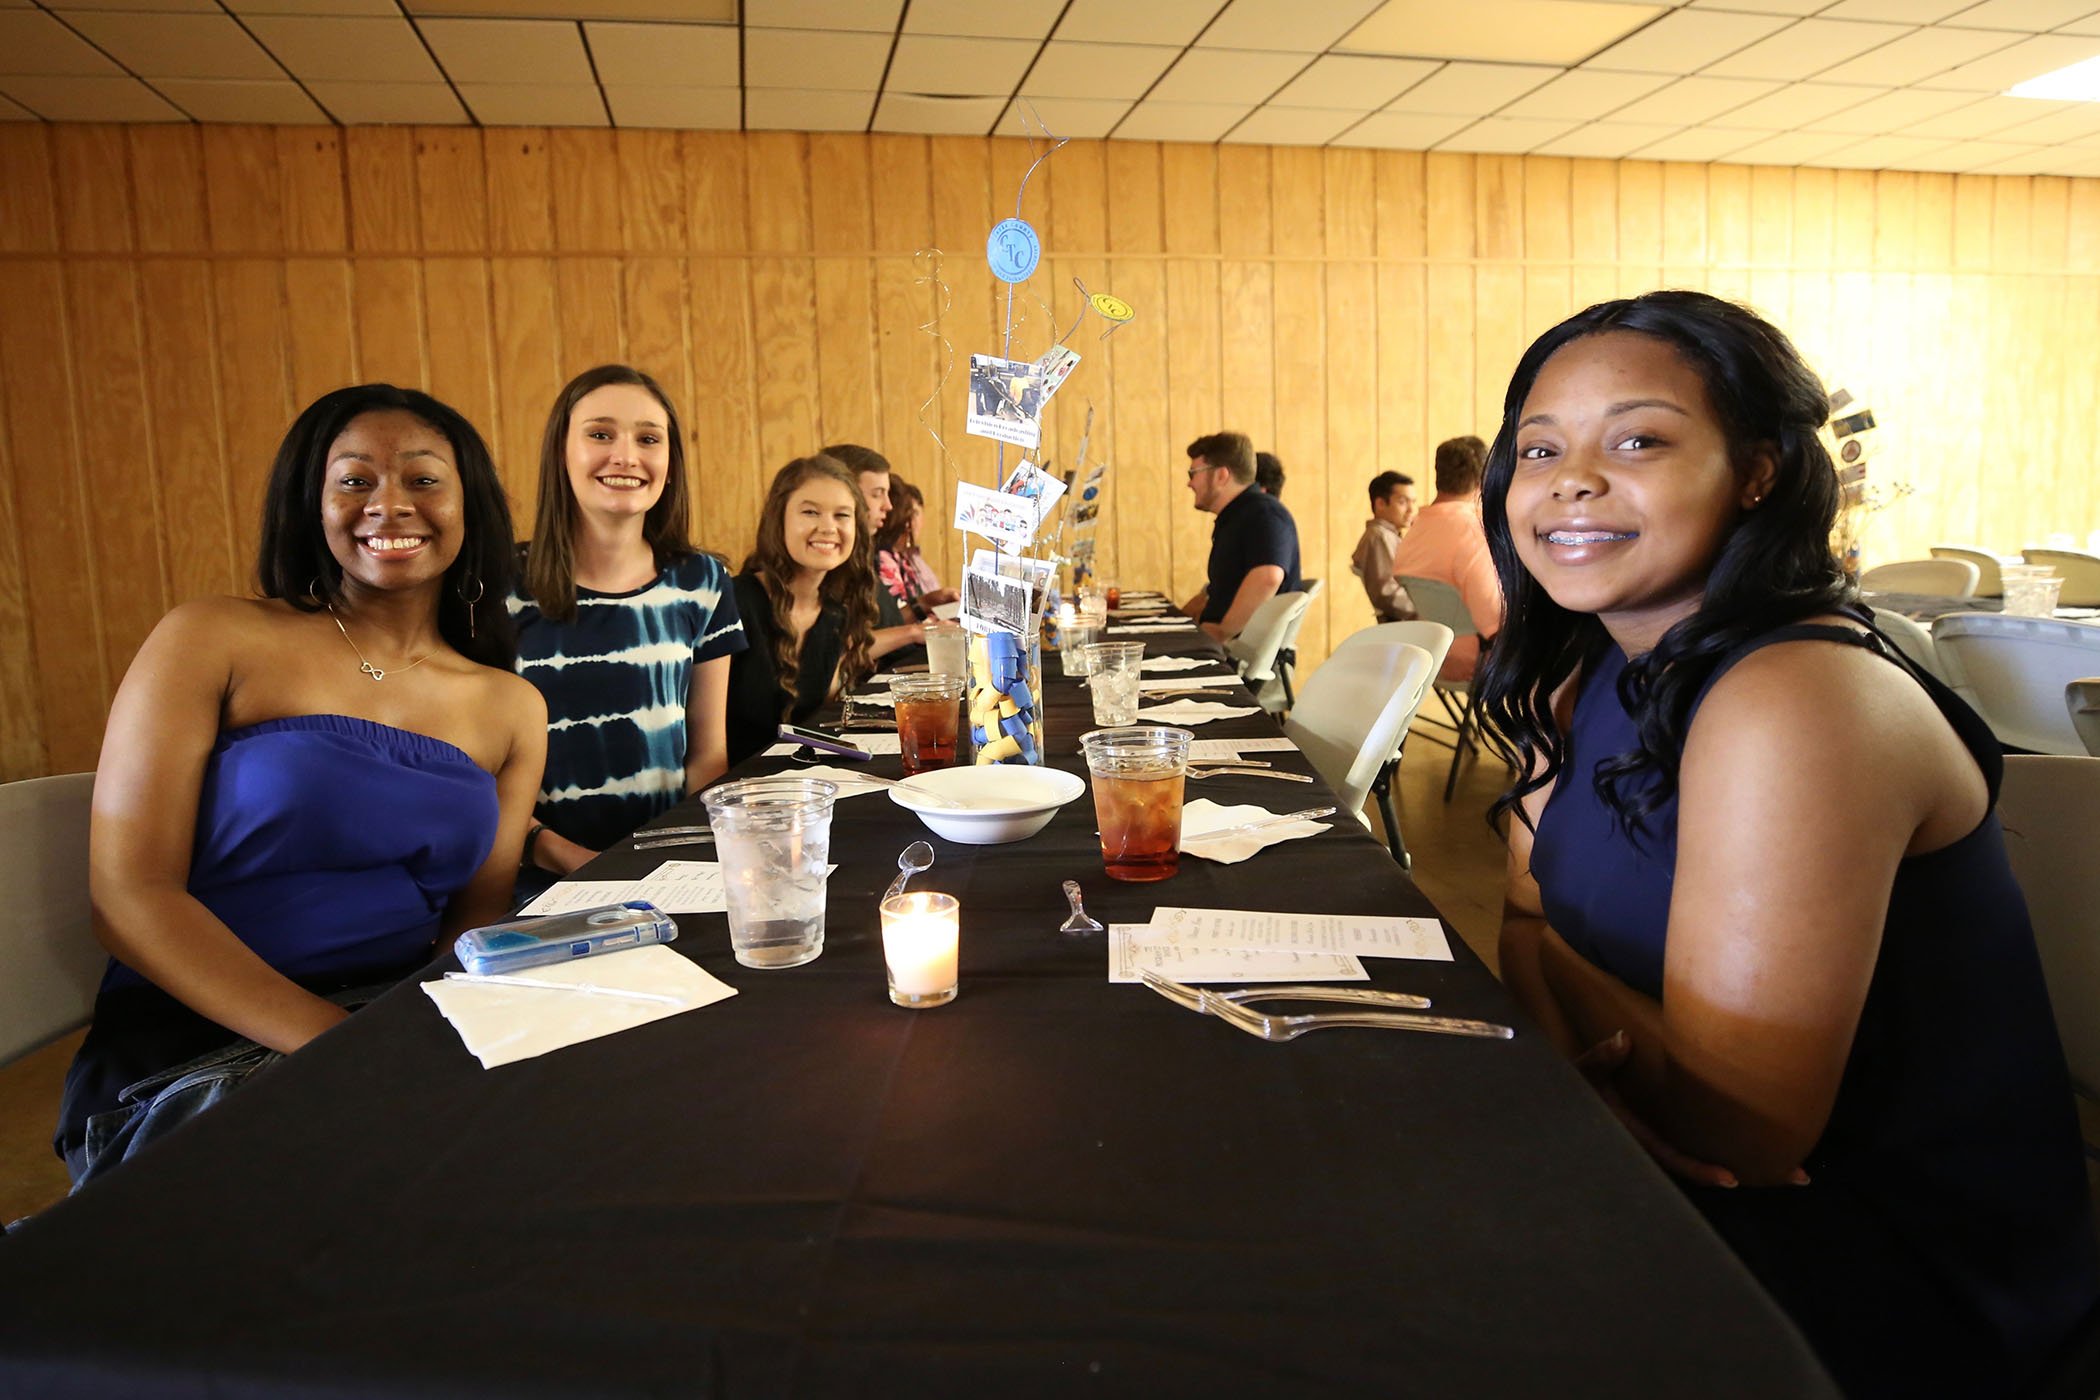 Culinary Arts II students enjoy a meal together.